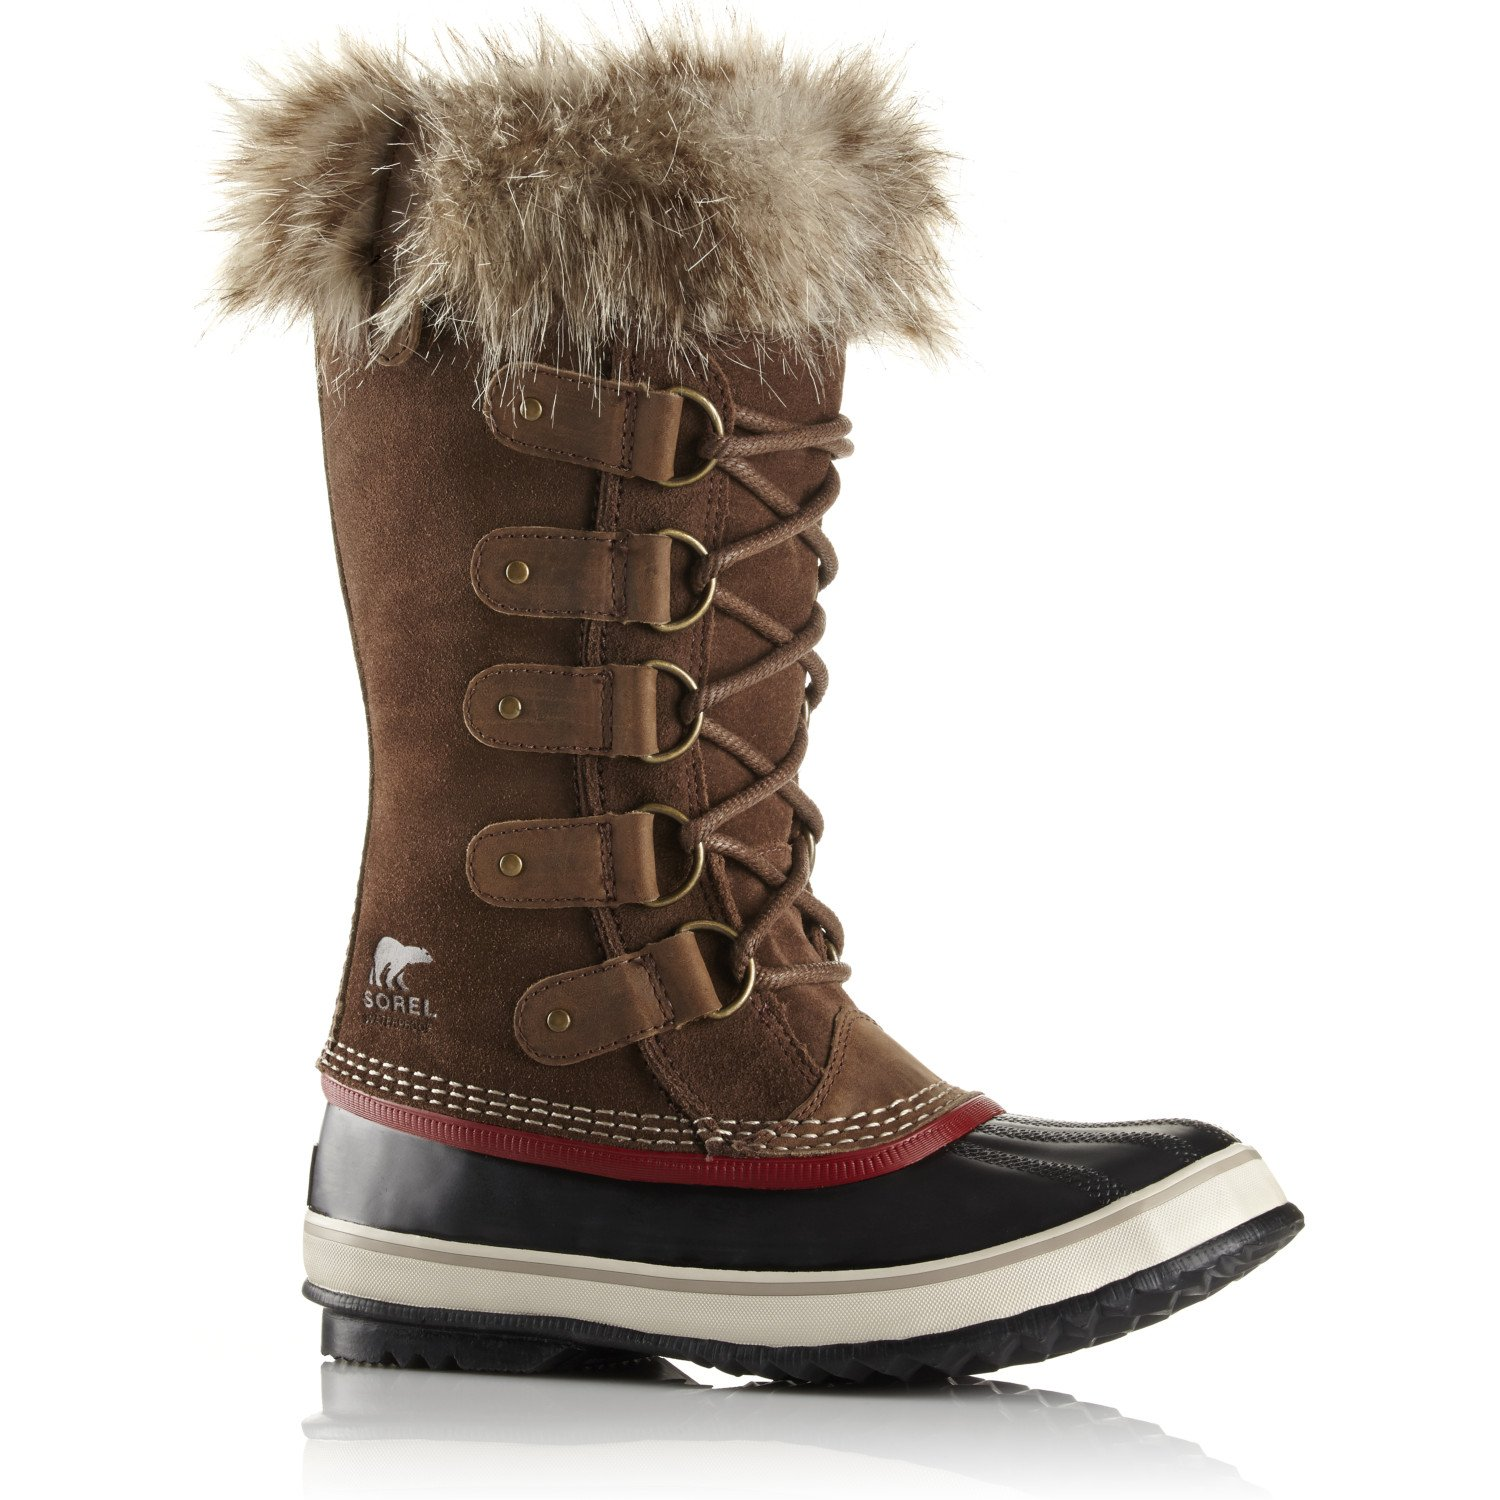 Sorel Joan Of Arctic Boot Womens Style: NL2429-261 Size: 7 by SOREL